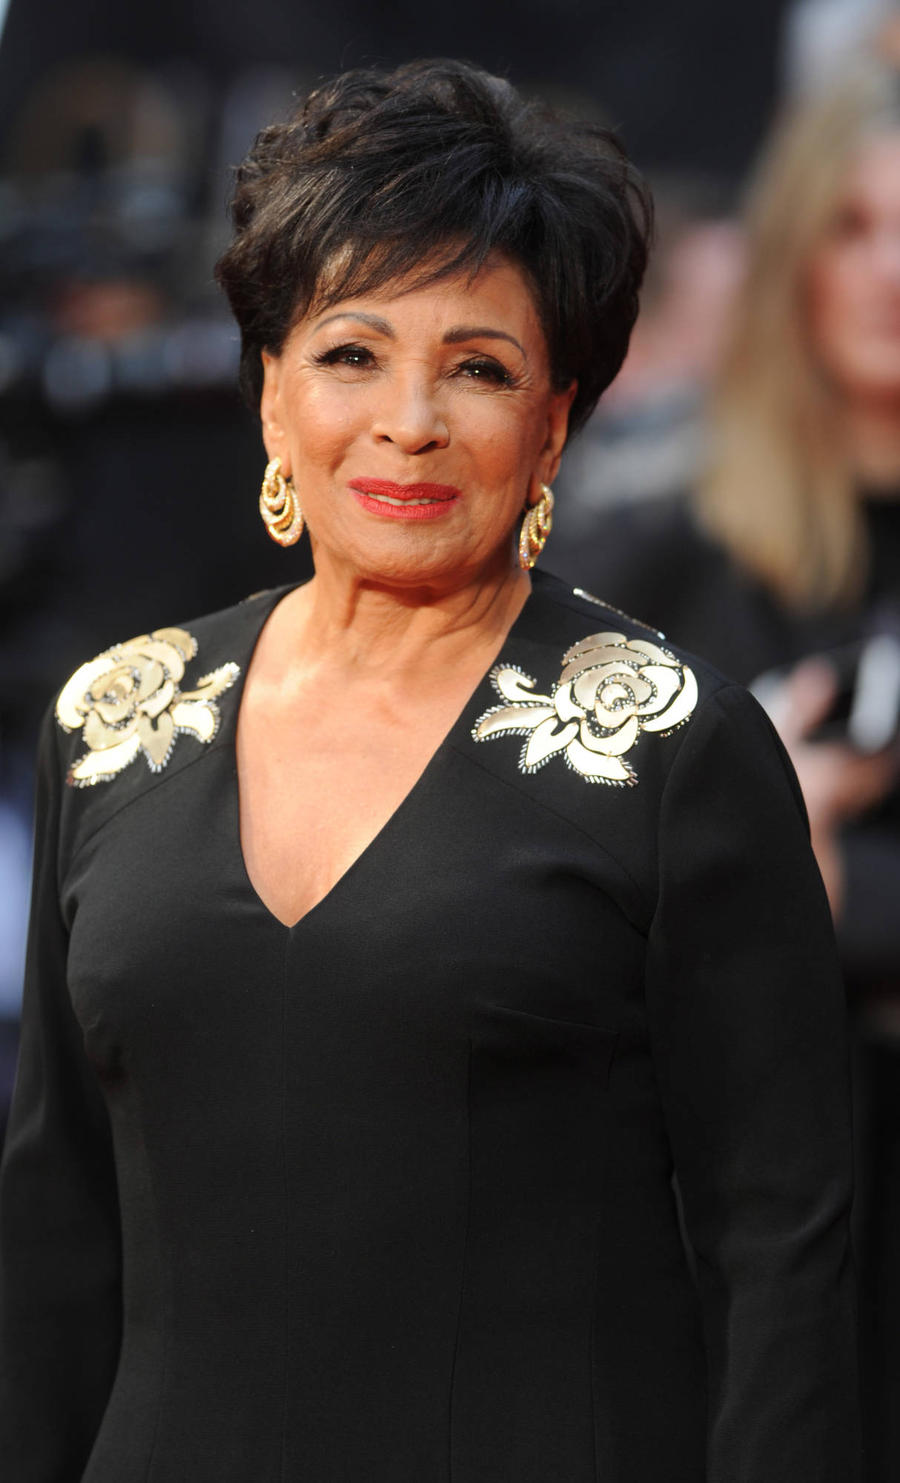 Shirley Bassey Lost Her Voice For Months After Daughter's Death